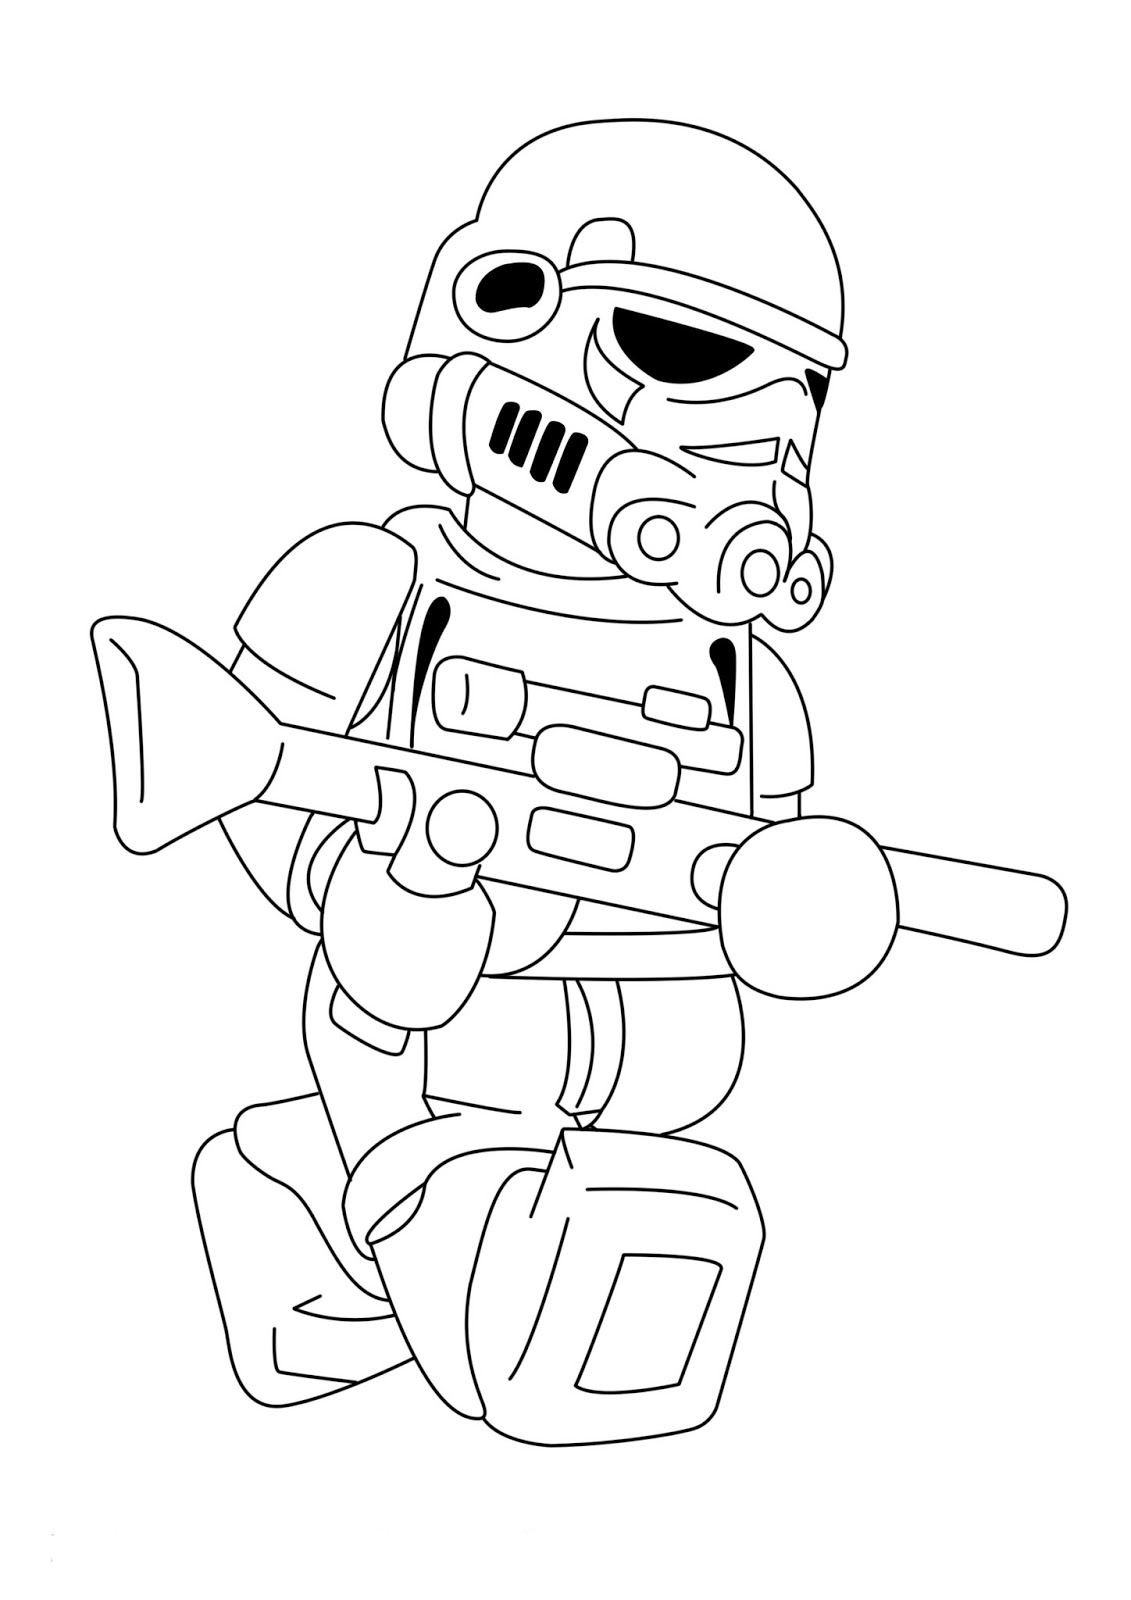 lego 2 coloring pages lego movie 2 coloring pages pictures whitesbelfast 2 pages coloring lego